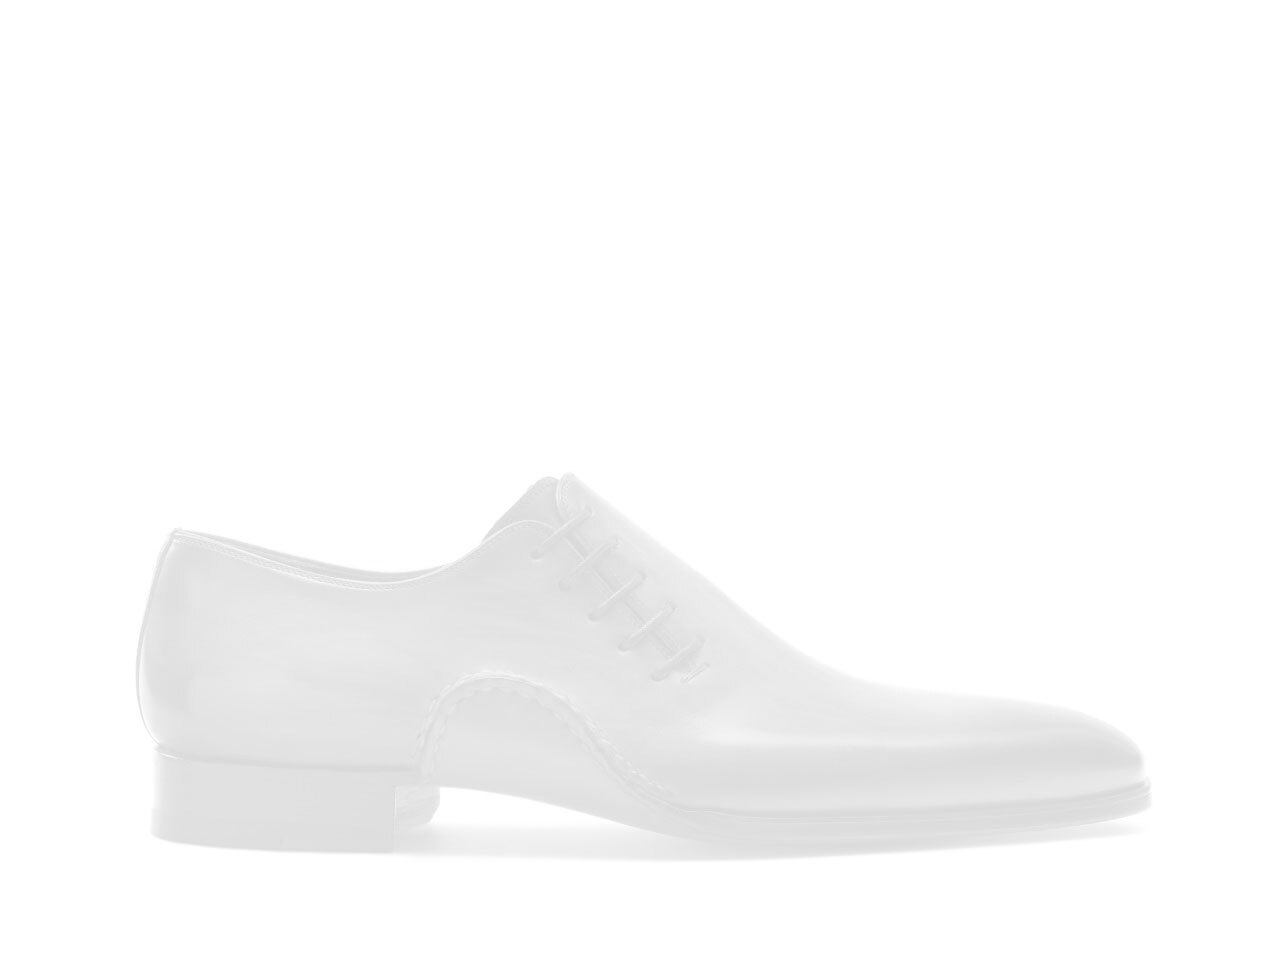 Pair of the Magnanni Basilio Lo White Men's Sneakers